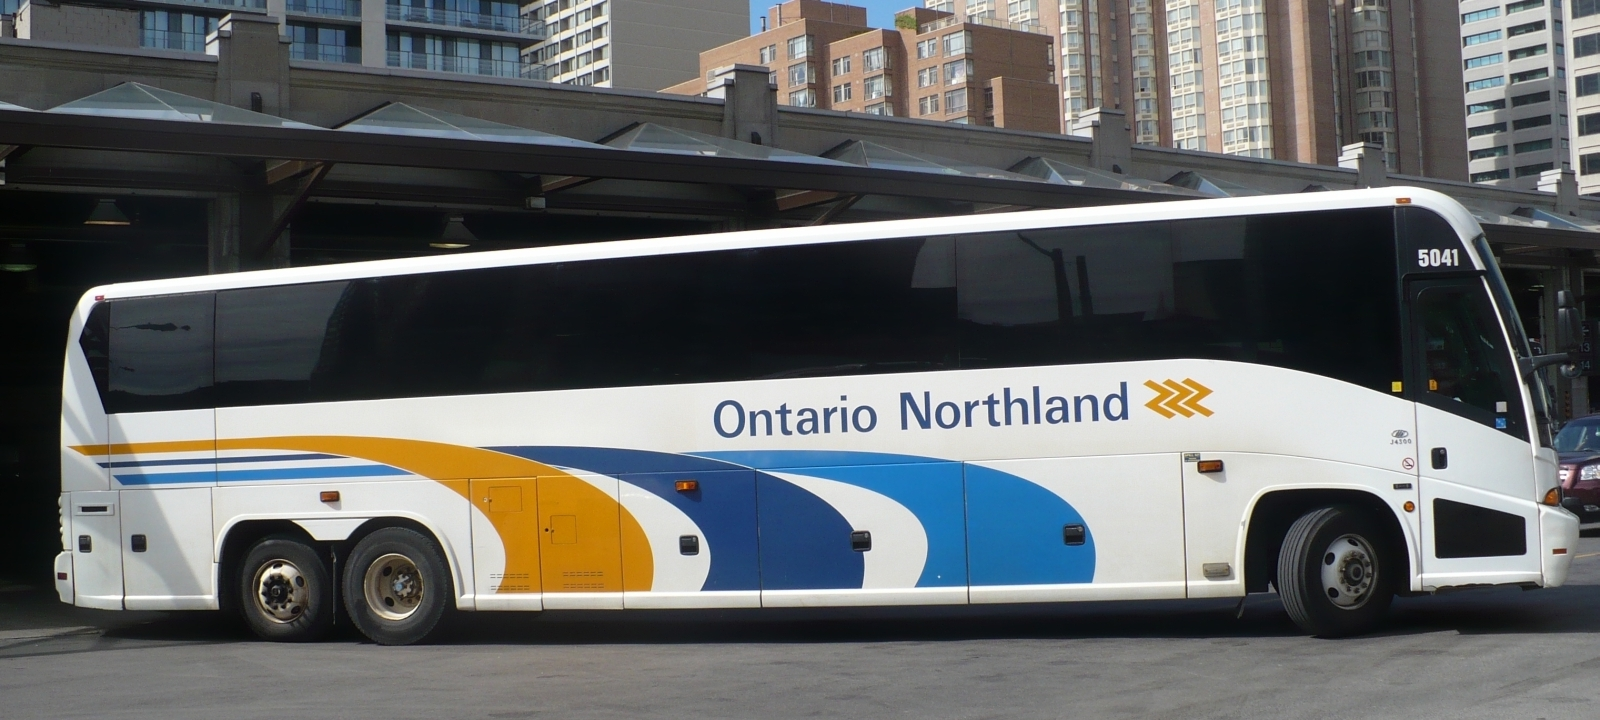 Opinions On Ontario Northland Motor Coach Services